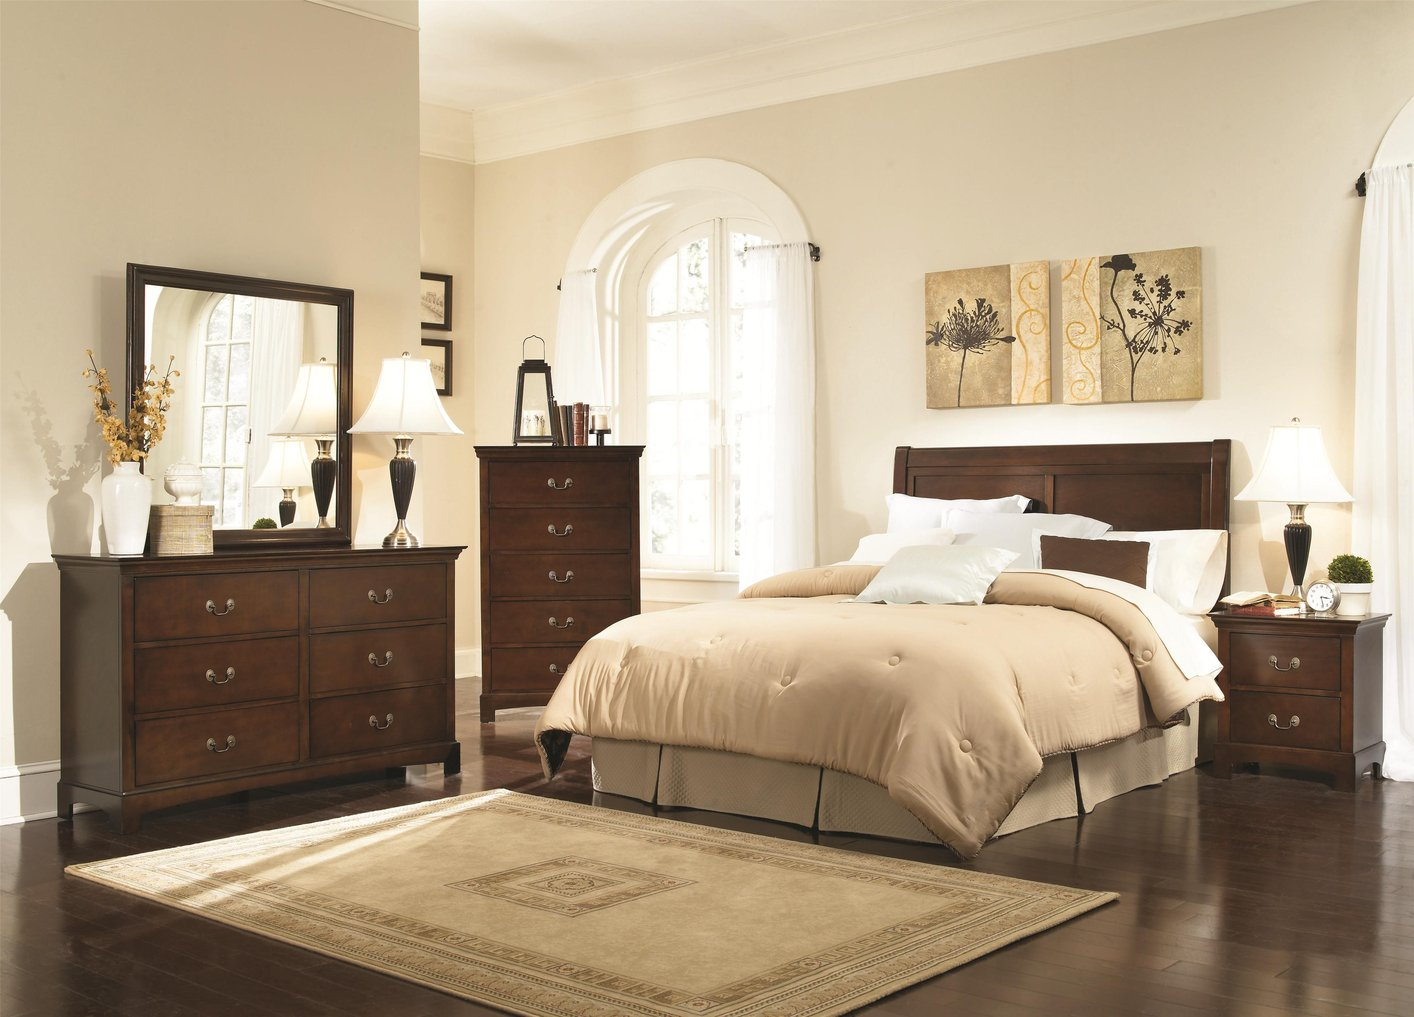 Superieur Choose Classic Bedroom Design With Wide Bed And Full Size Headboards Near  Solid Oak Dressers